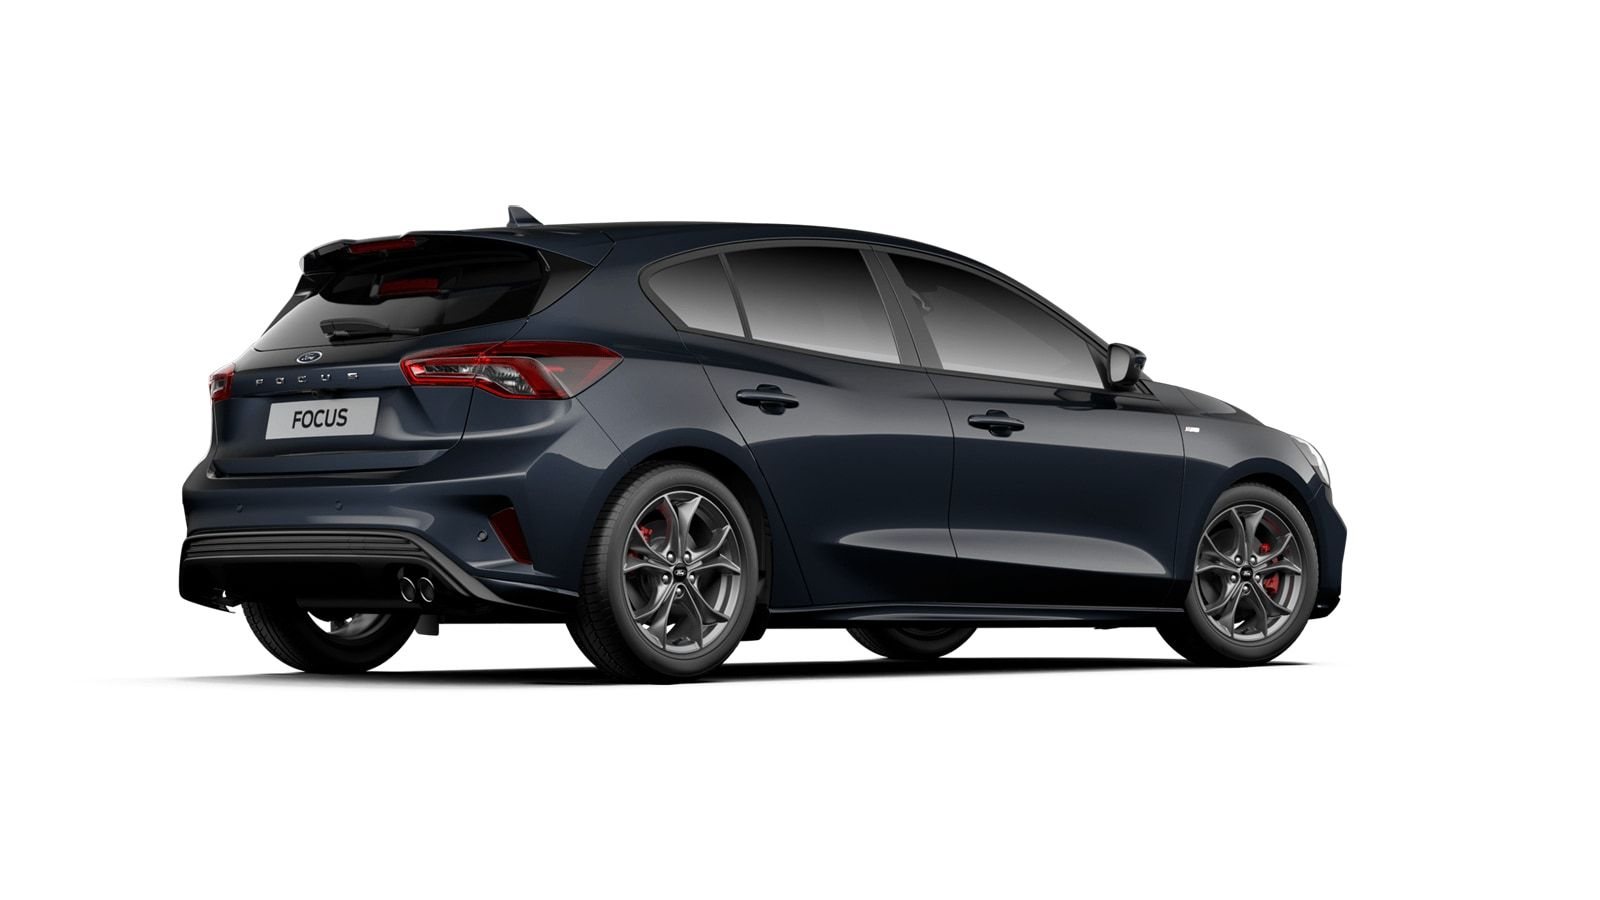 """Nieuw Ford Focus ST-Line X 1.0 EcoBoost 125ps A8 CL FCD - """"Panther Blue"""" Exclusieve metaalkleur 3"""